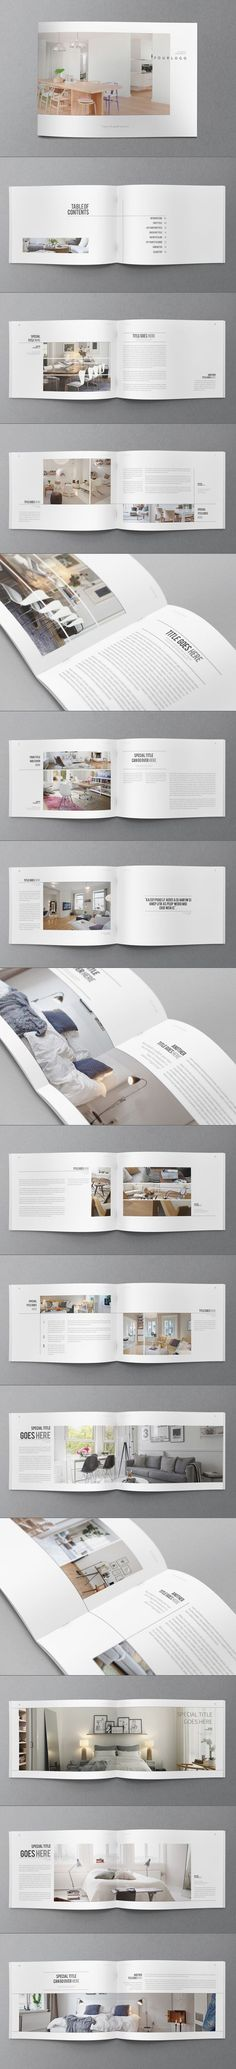 Minimal Interior Design Brochure. Download here: http://graphicriver.net/item/minimal-interior-design-brochure/8925678?ref=abradesign #design #brochure: